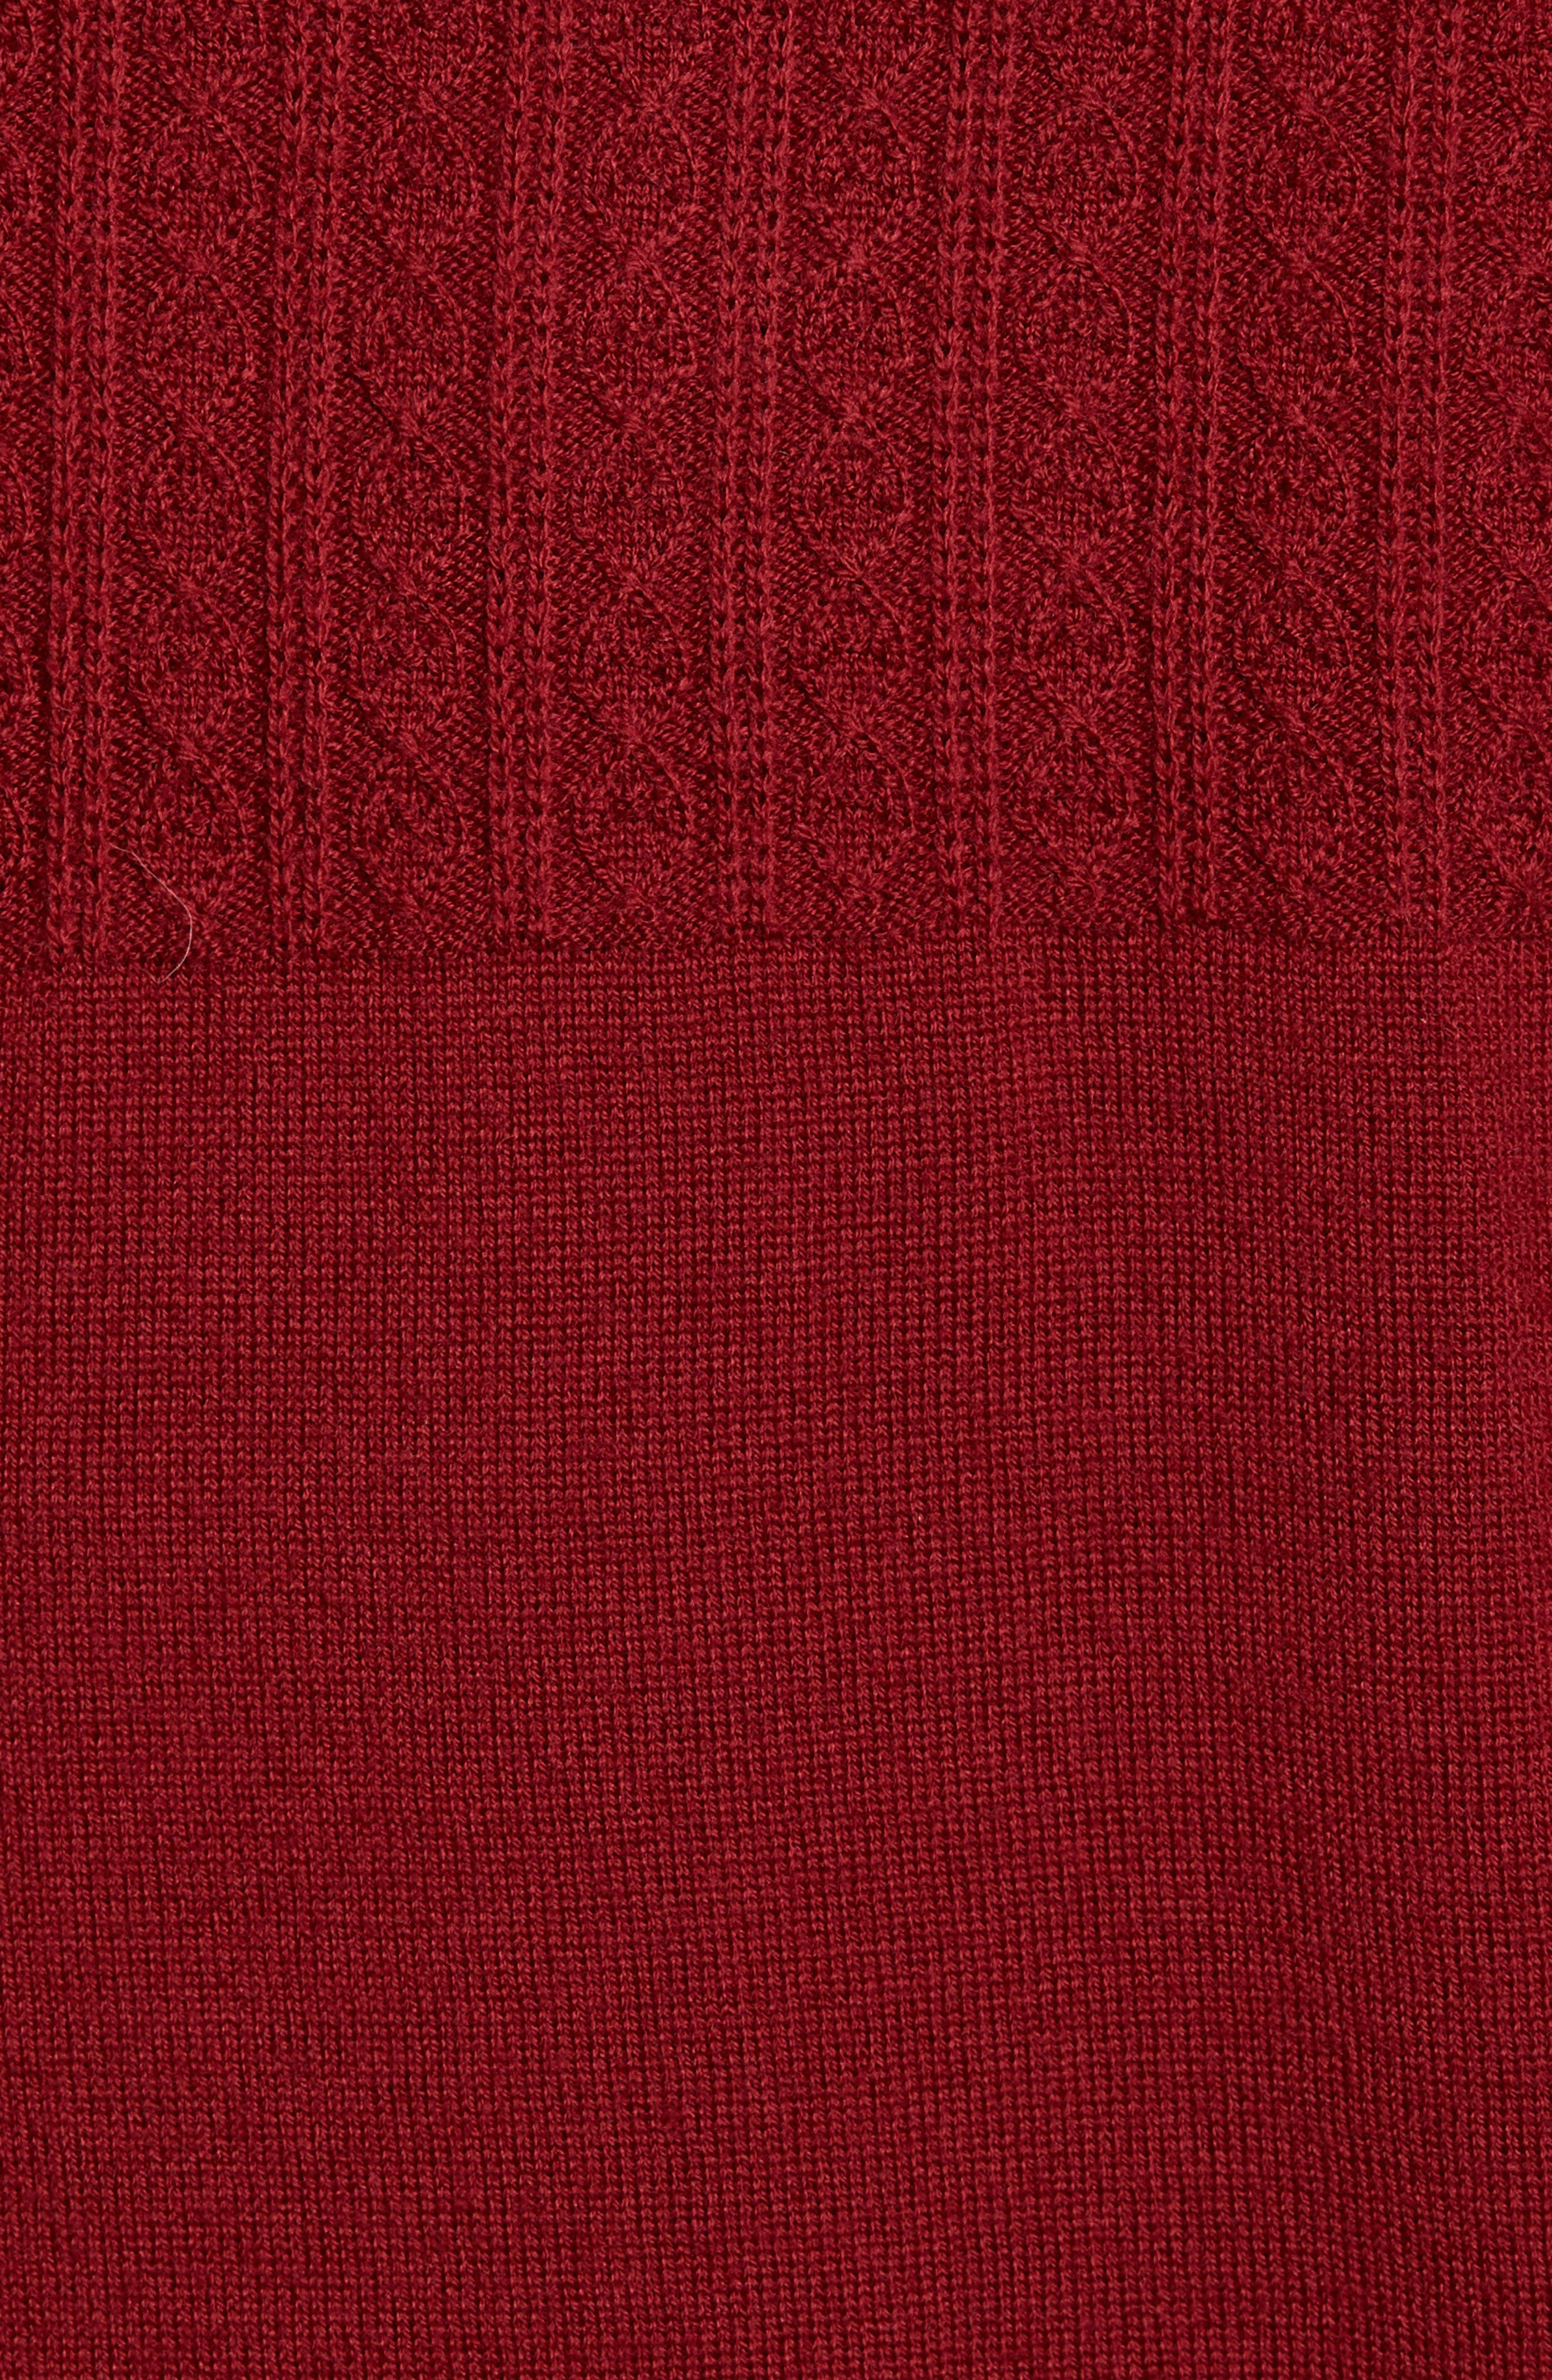 Cable Wind Wool Sweater,                             Alternate thumbnail 5, color,                             Brick Red